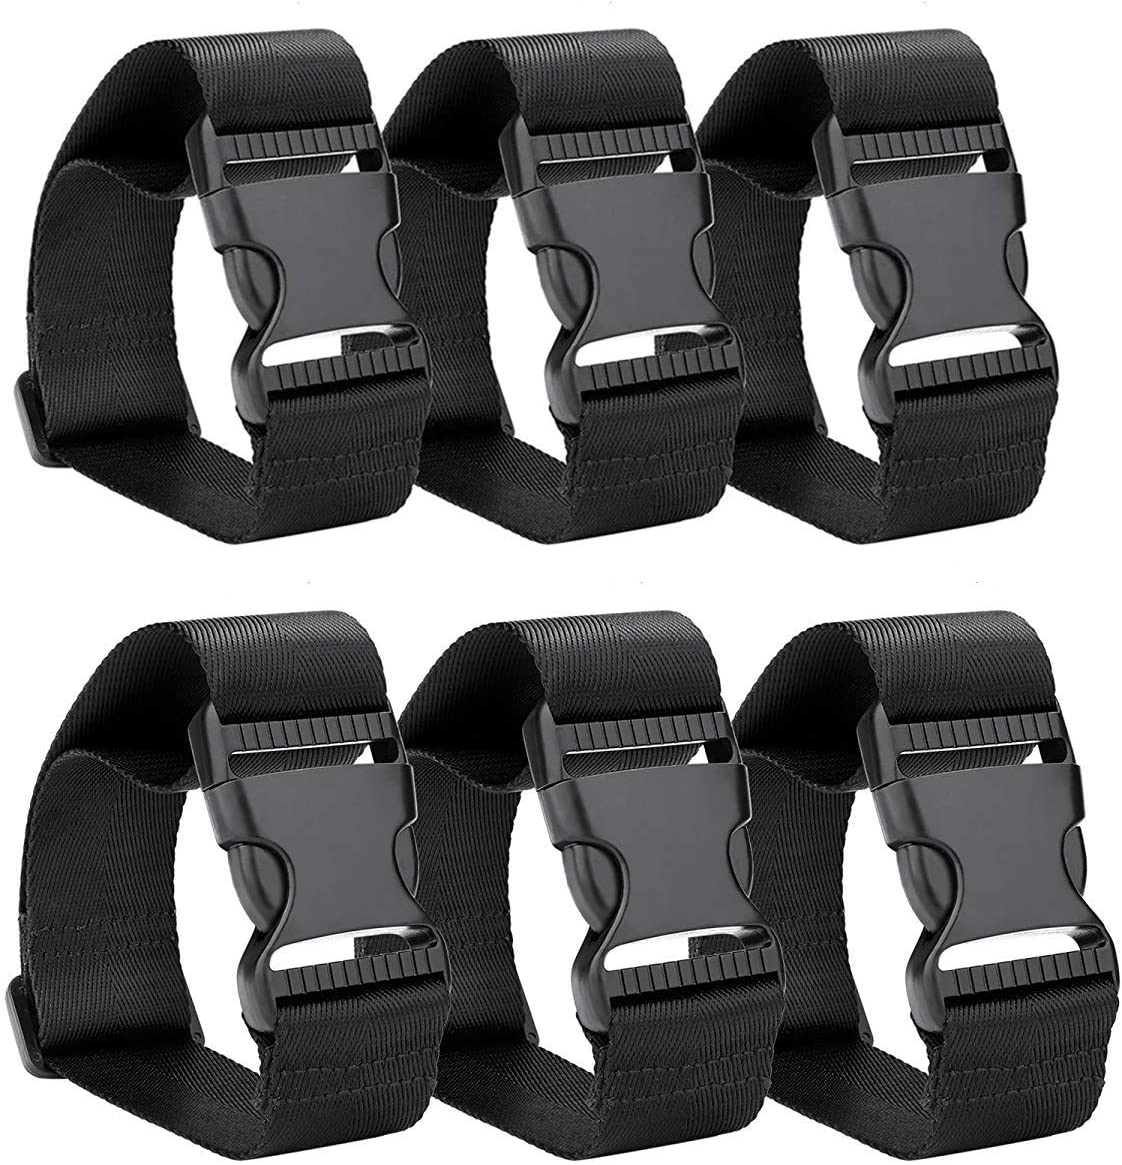 Add a Bag Luggage Strap,Adjustable Suitcase Belt Hook Straps Accessories for Travel and Trip by JEDE (6 Pack)